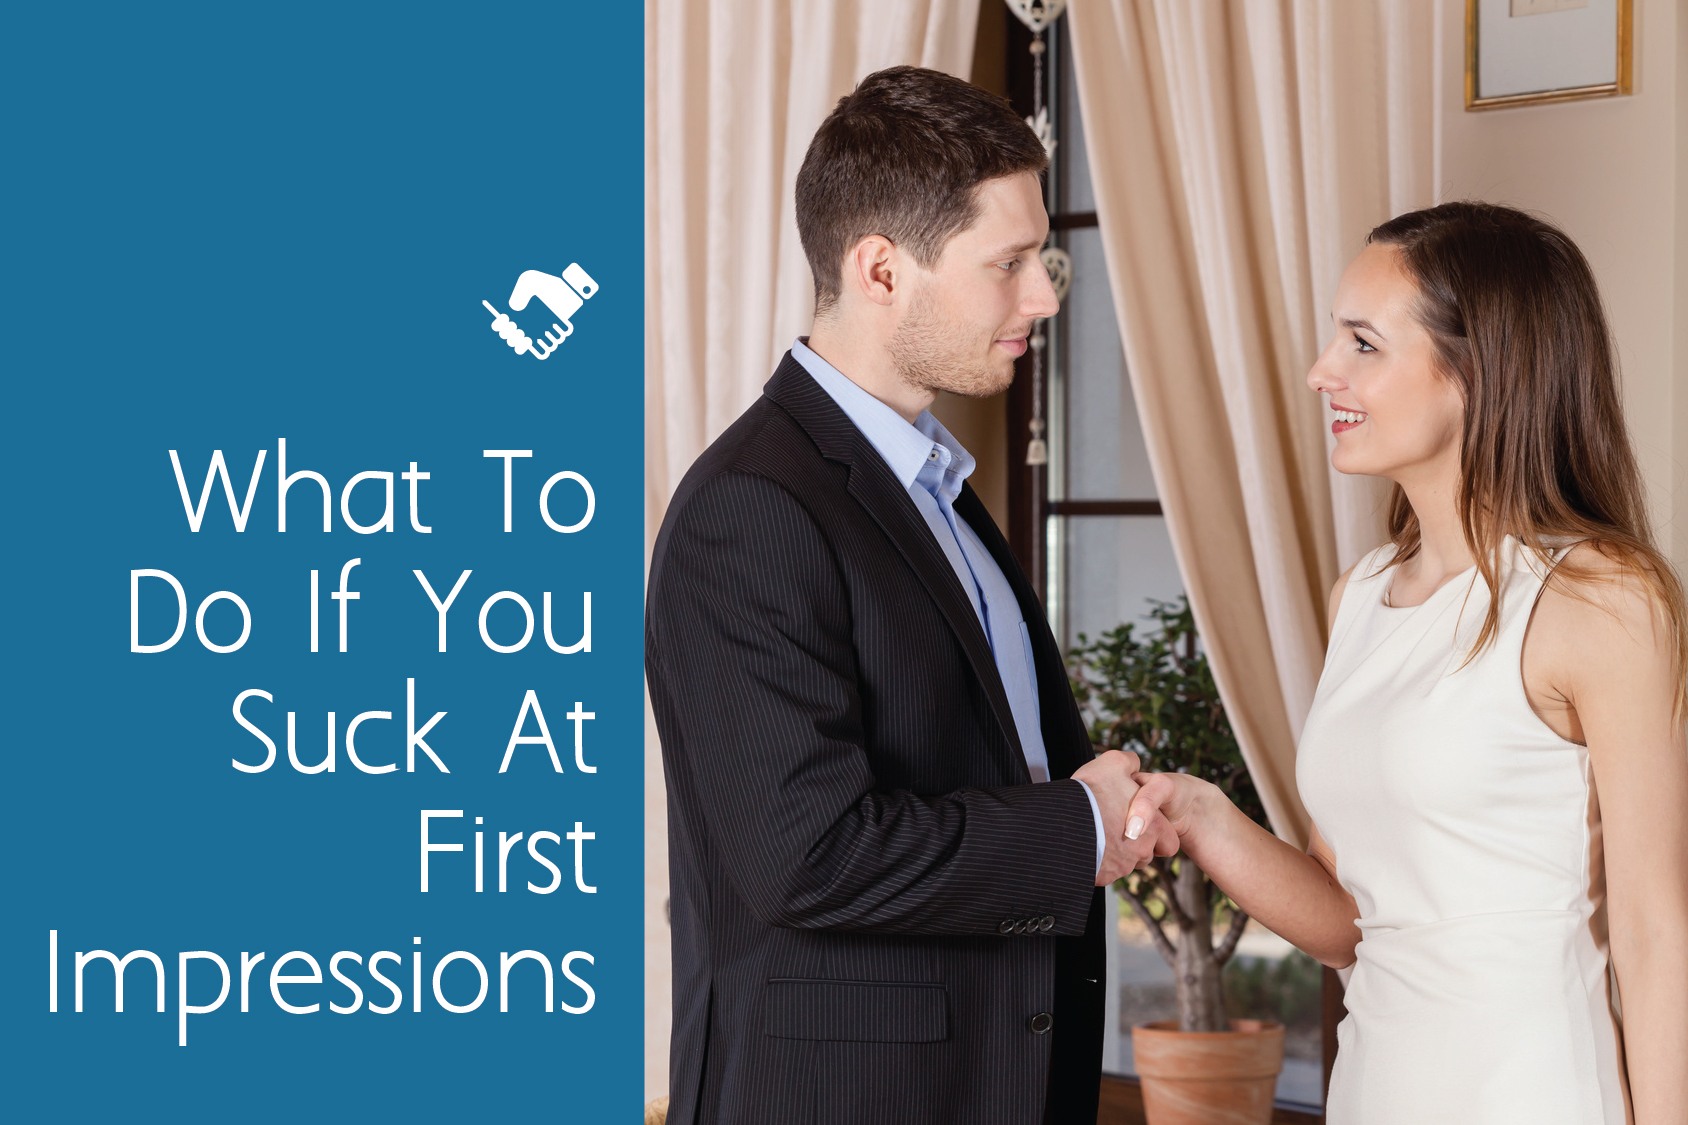 at first impression